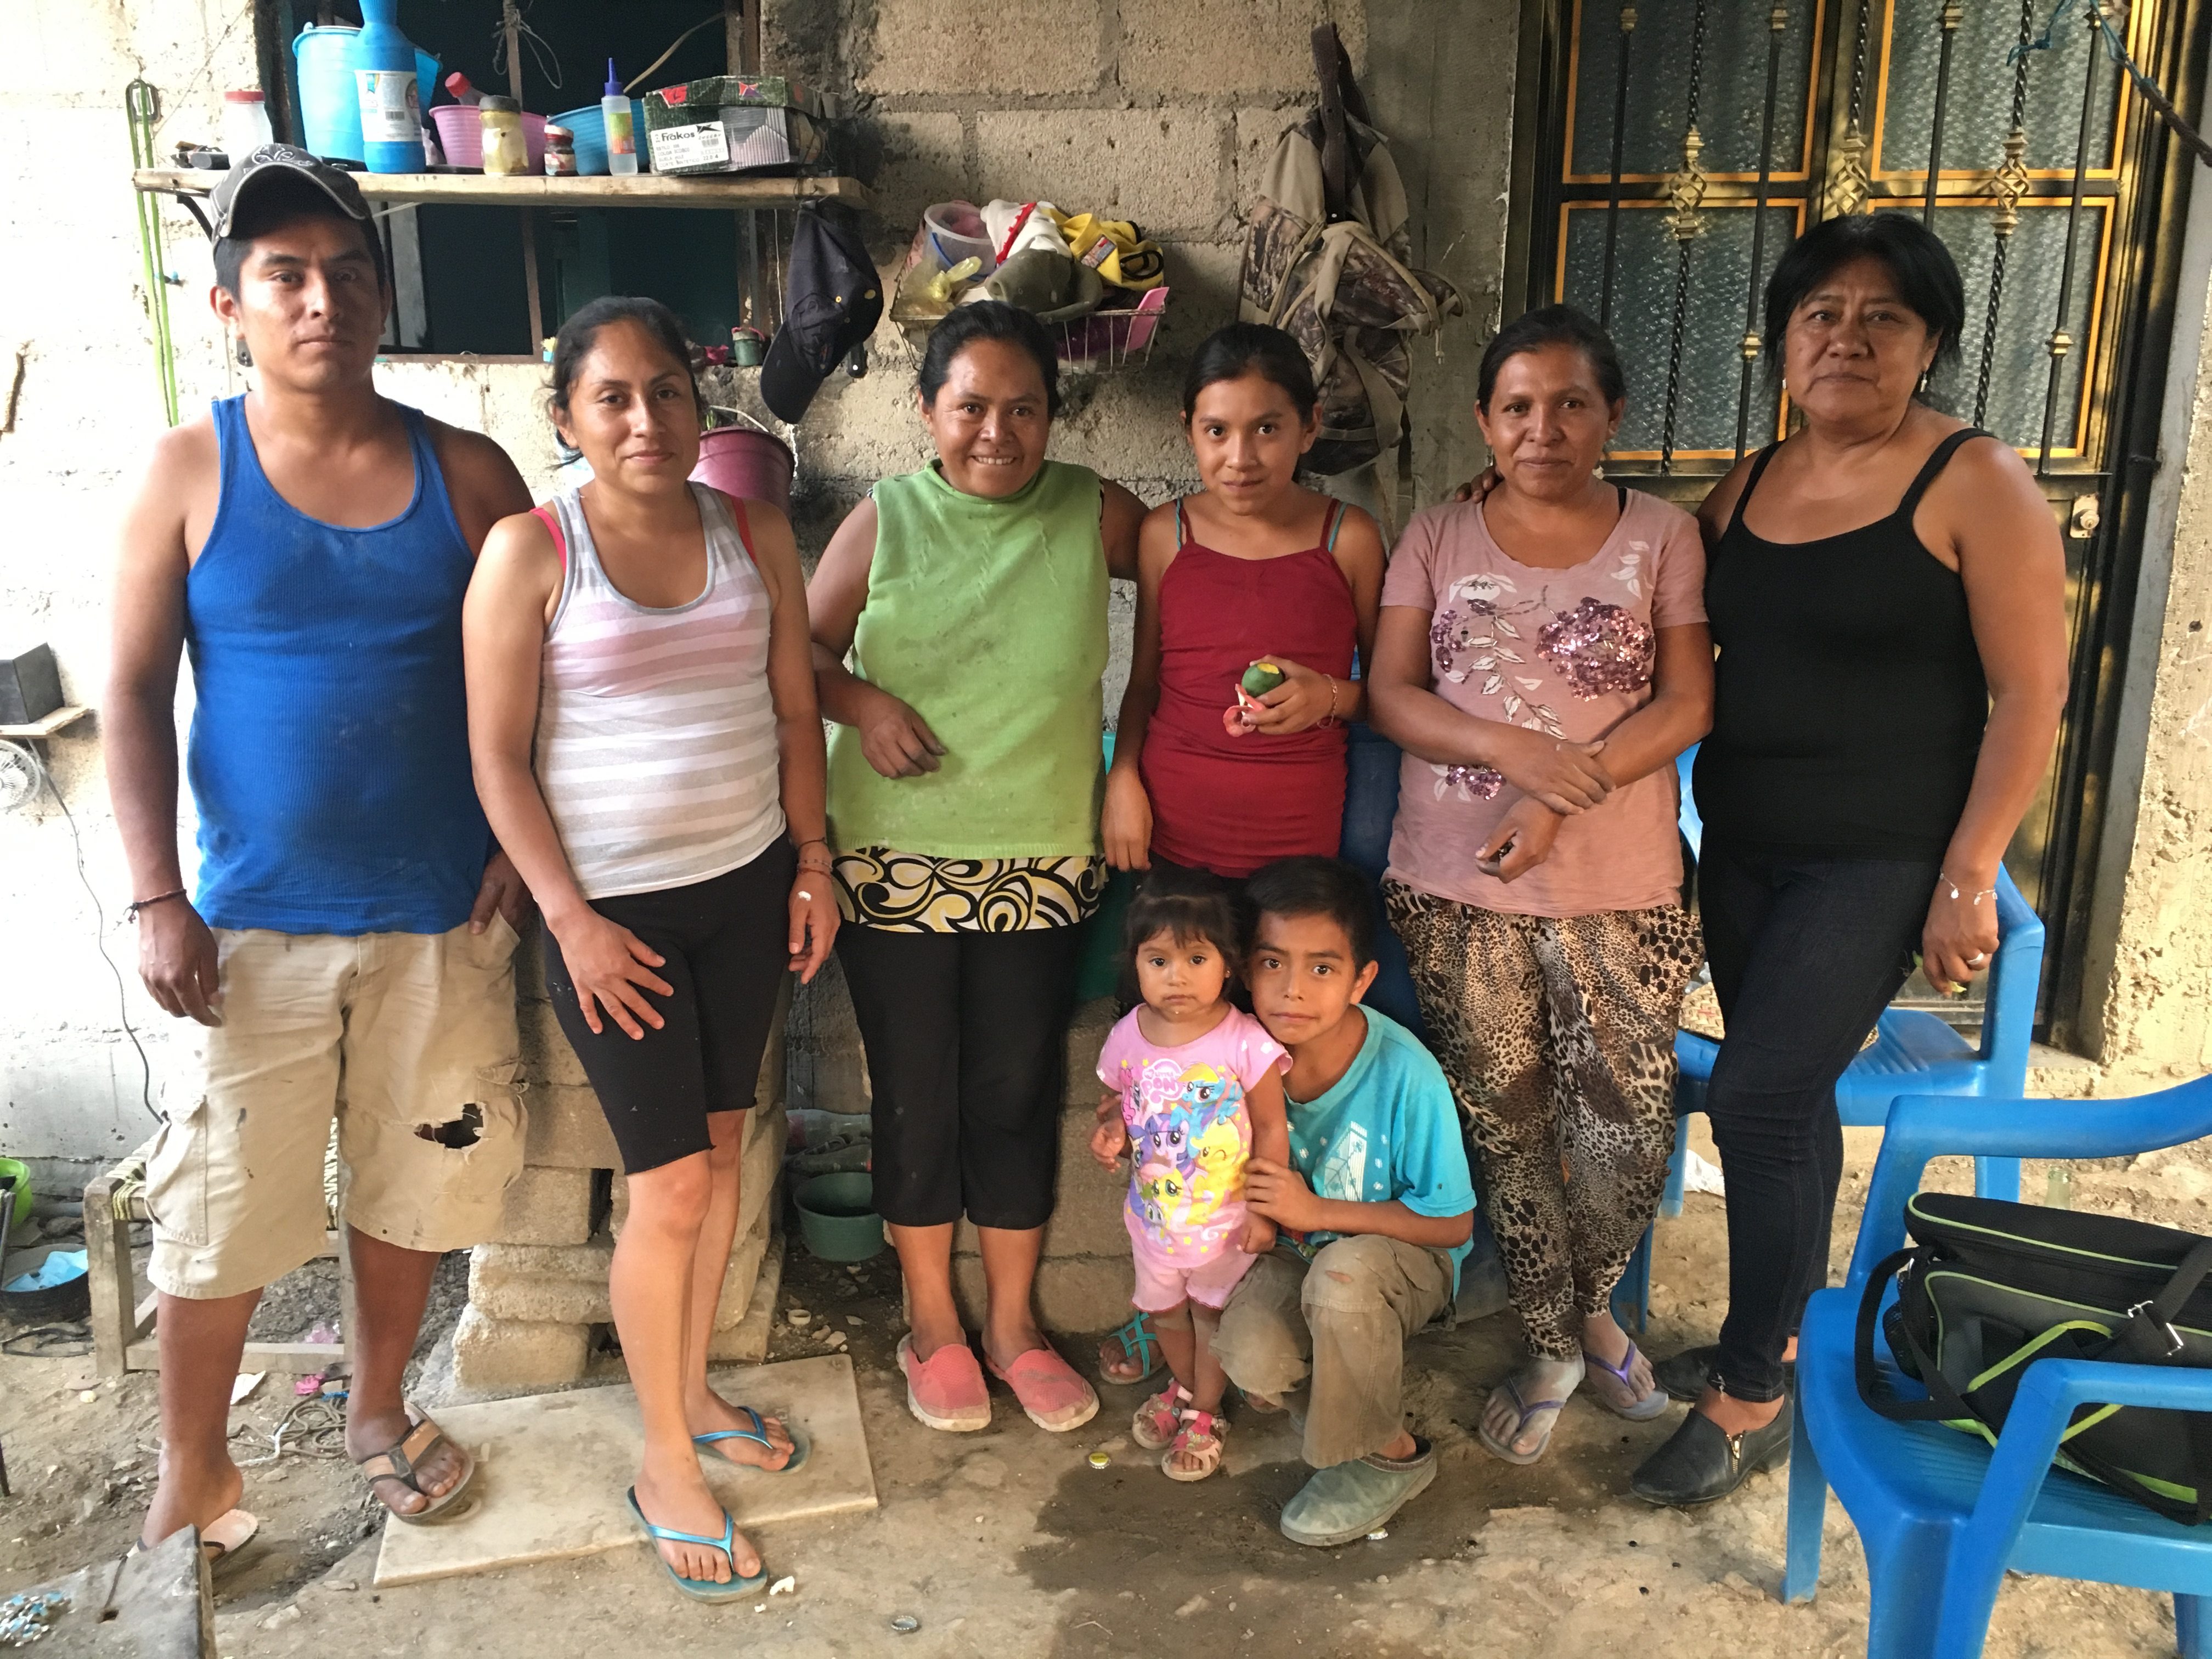 Berta, a silversmith, pictured with Family in Mexico | Fair Anita